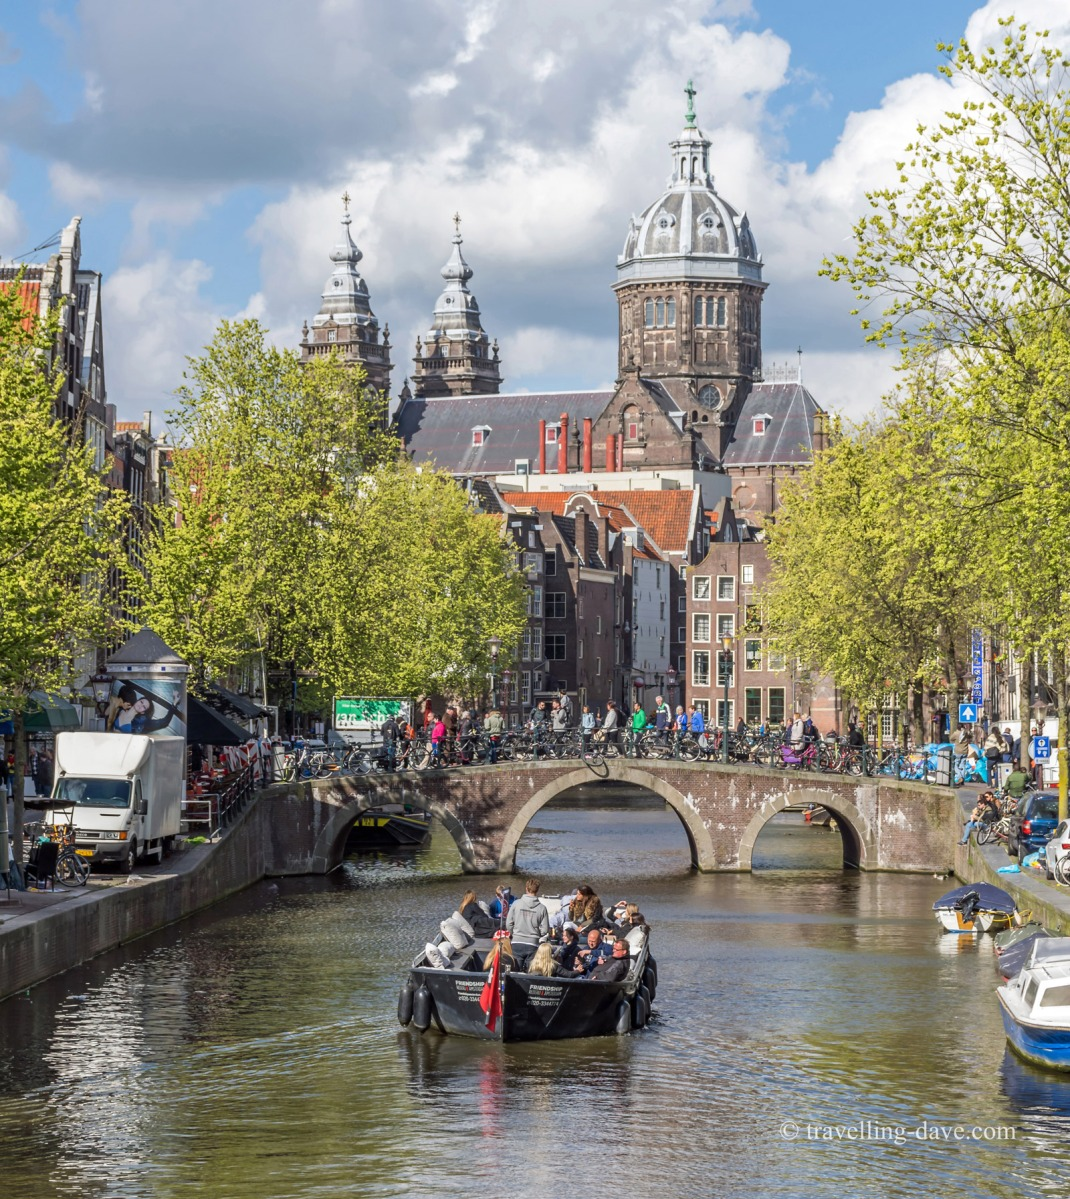 View of a church and bridge over a canal in Amsterdam